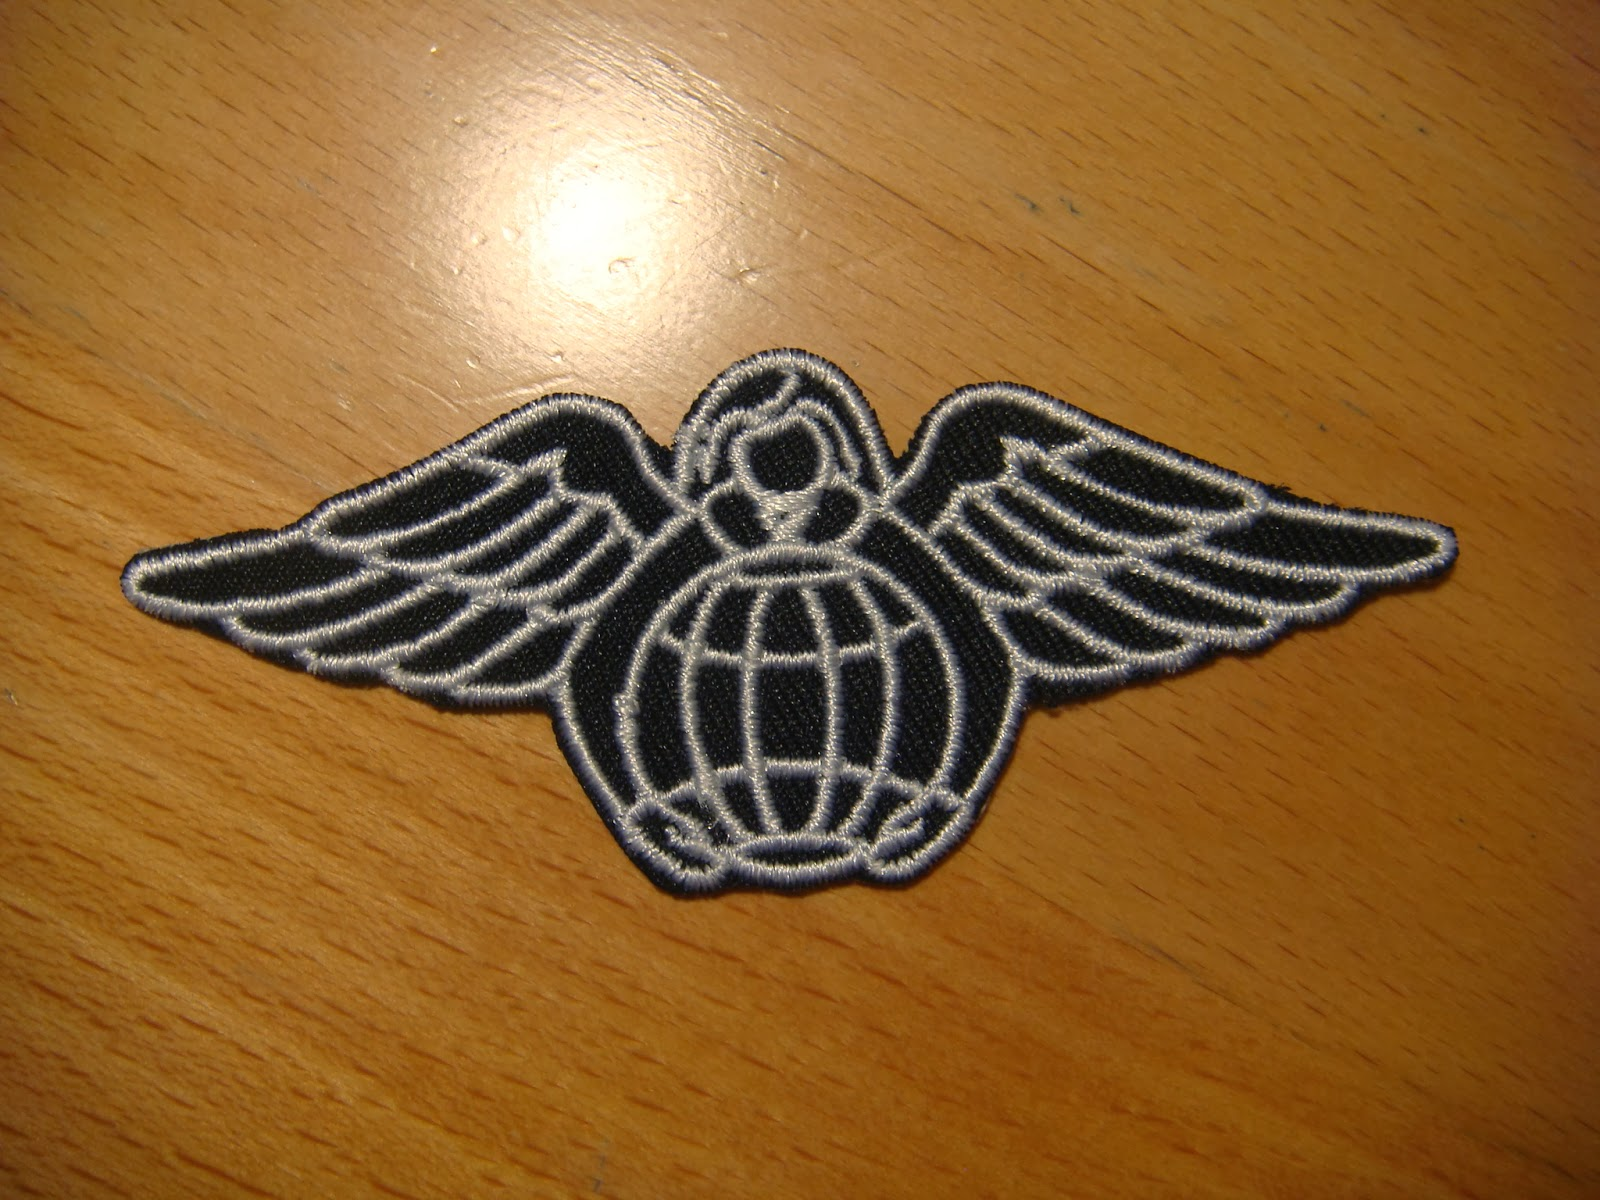 pararescue angel of mercy - photo #7